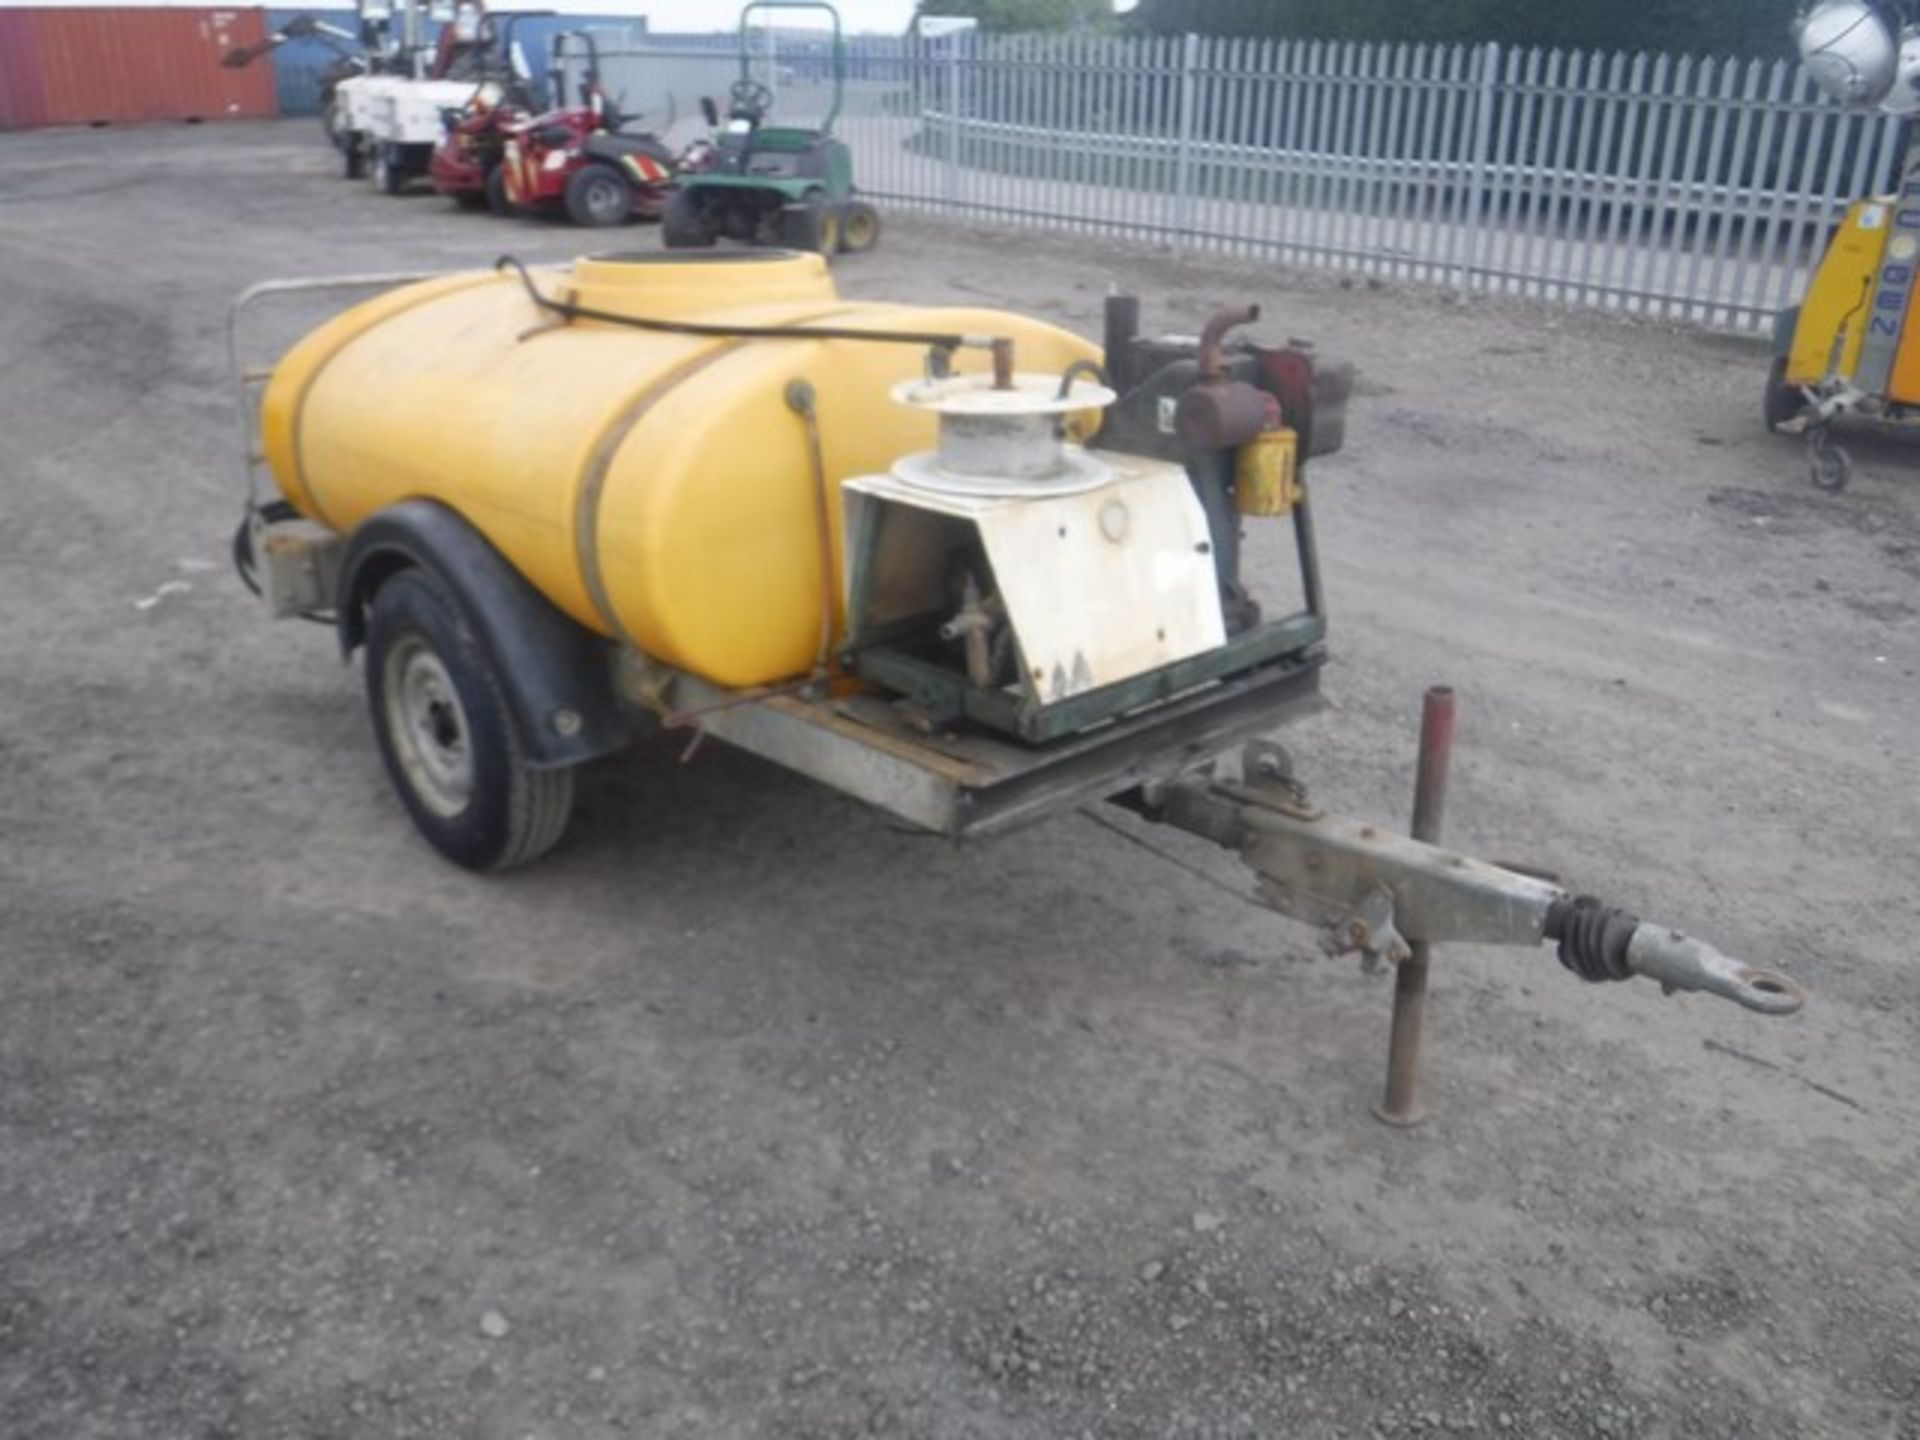 Auktionslos 500 - 1996 WESTERN towable pressure washer S/N 66/79/2